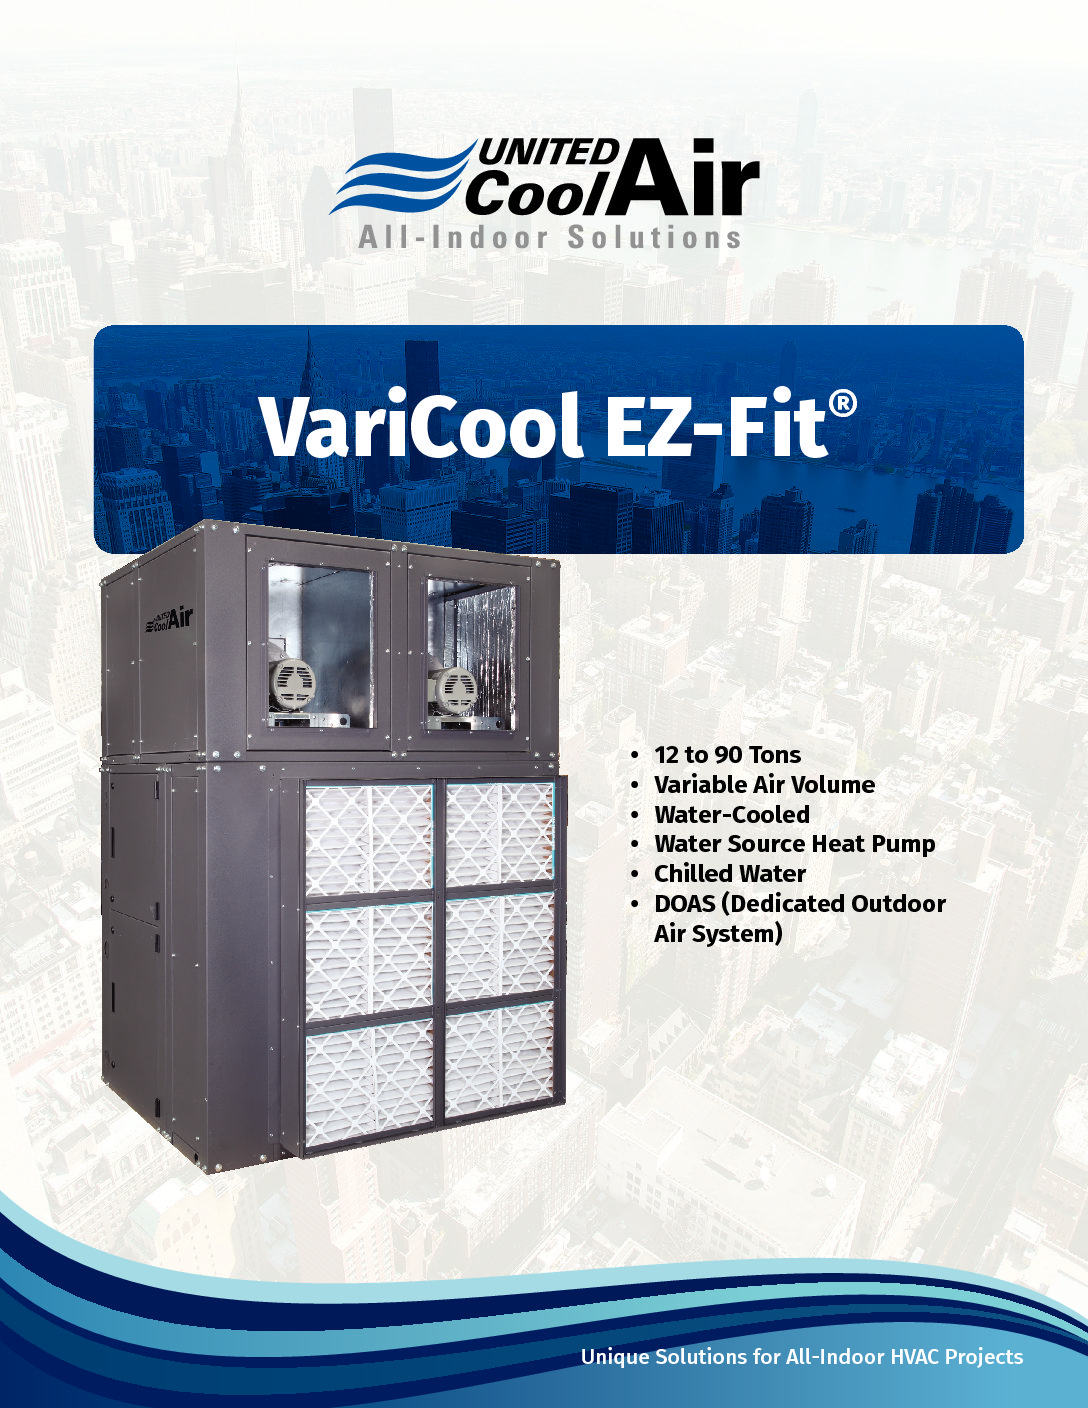 VariCool EZ-Fit Brochure